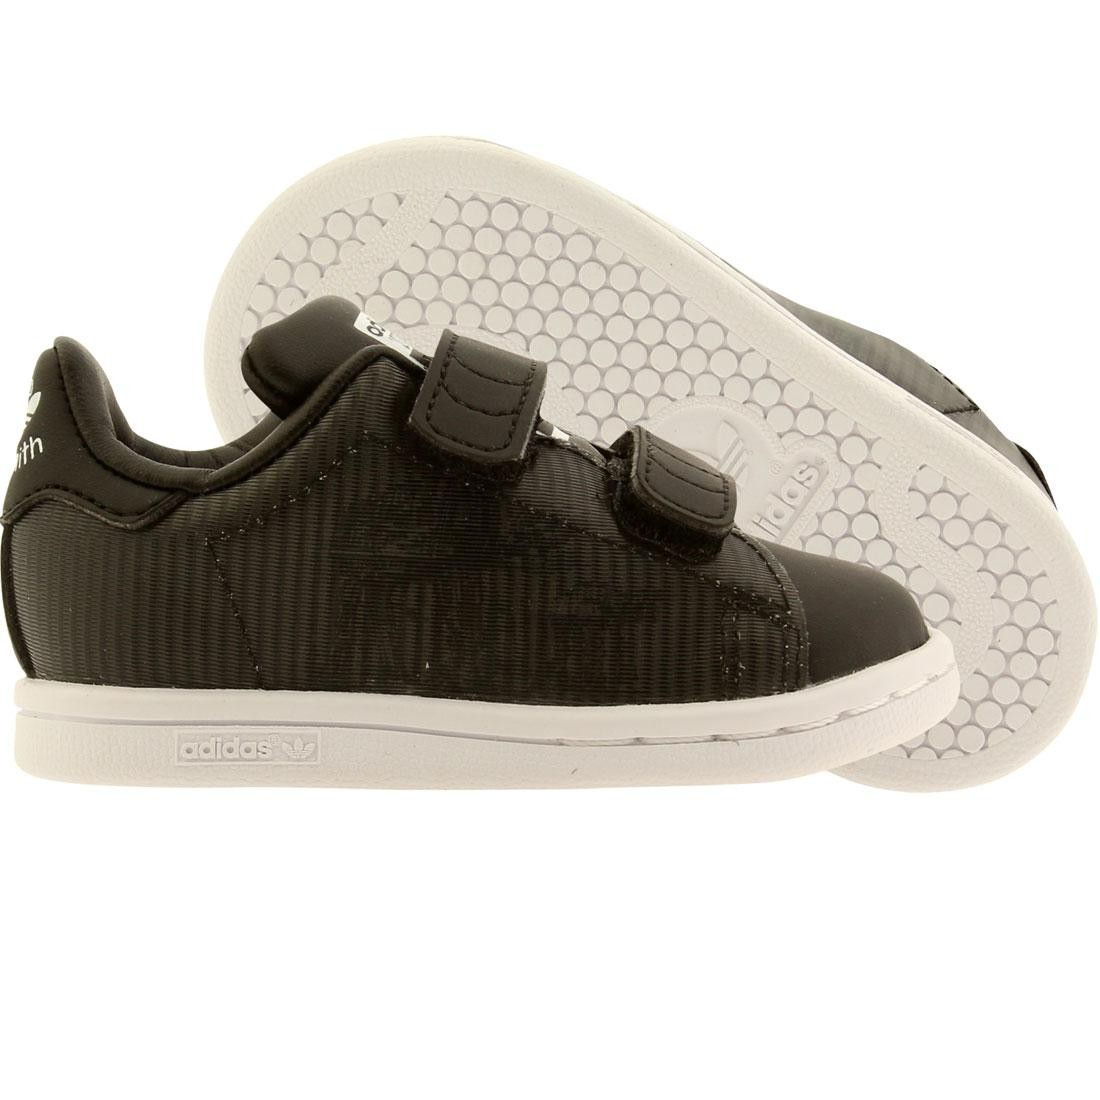 adidas stan smith nere limited edition